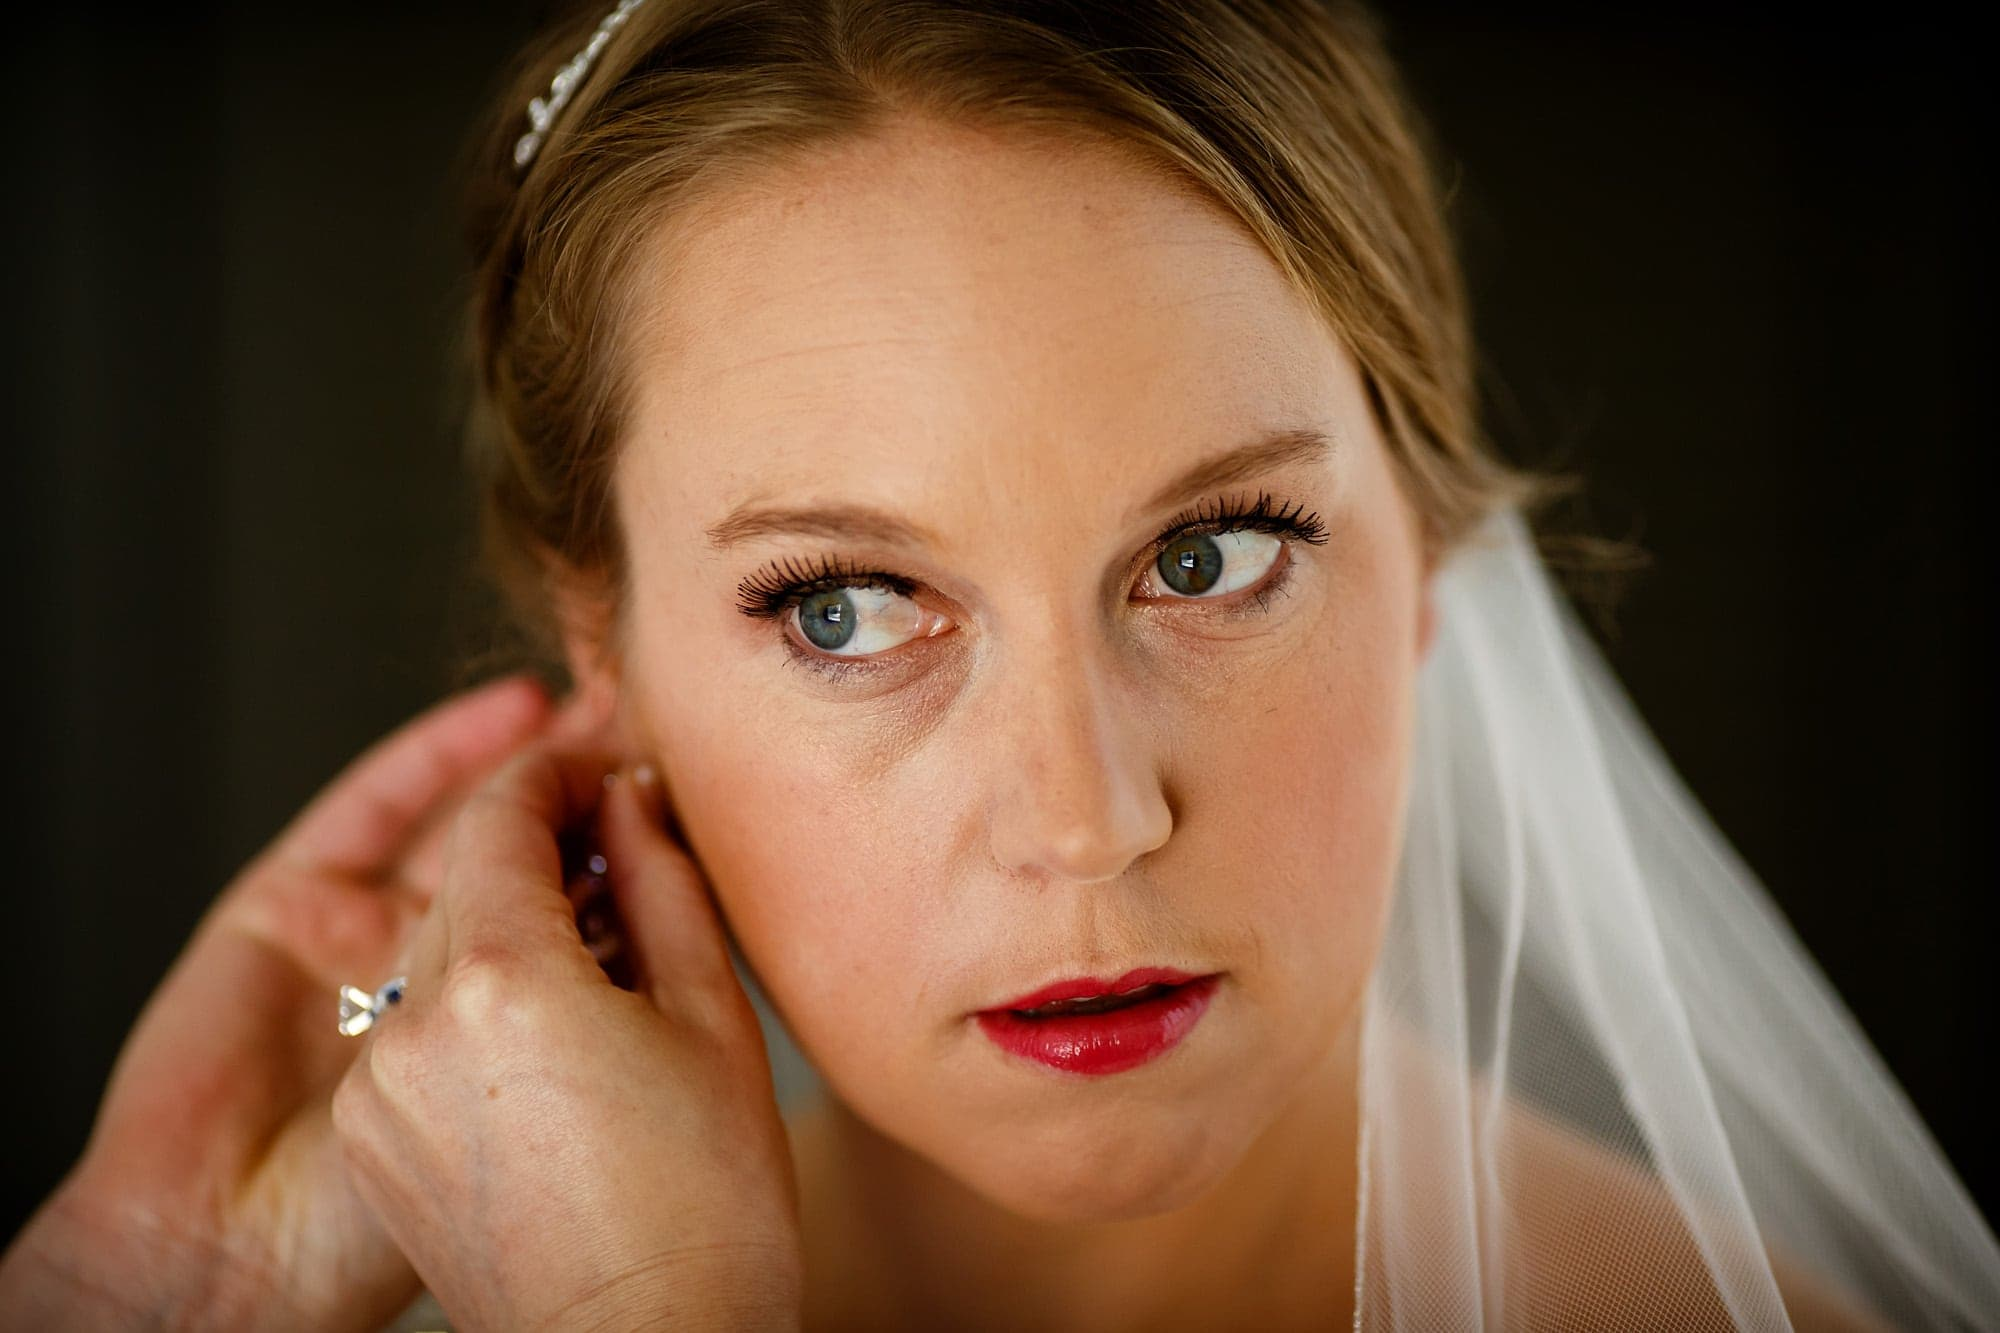 A bride puts her earrings on while looking in the mirror